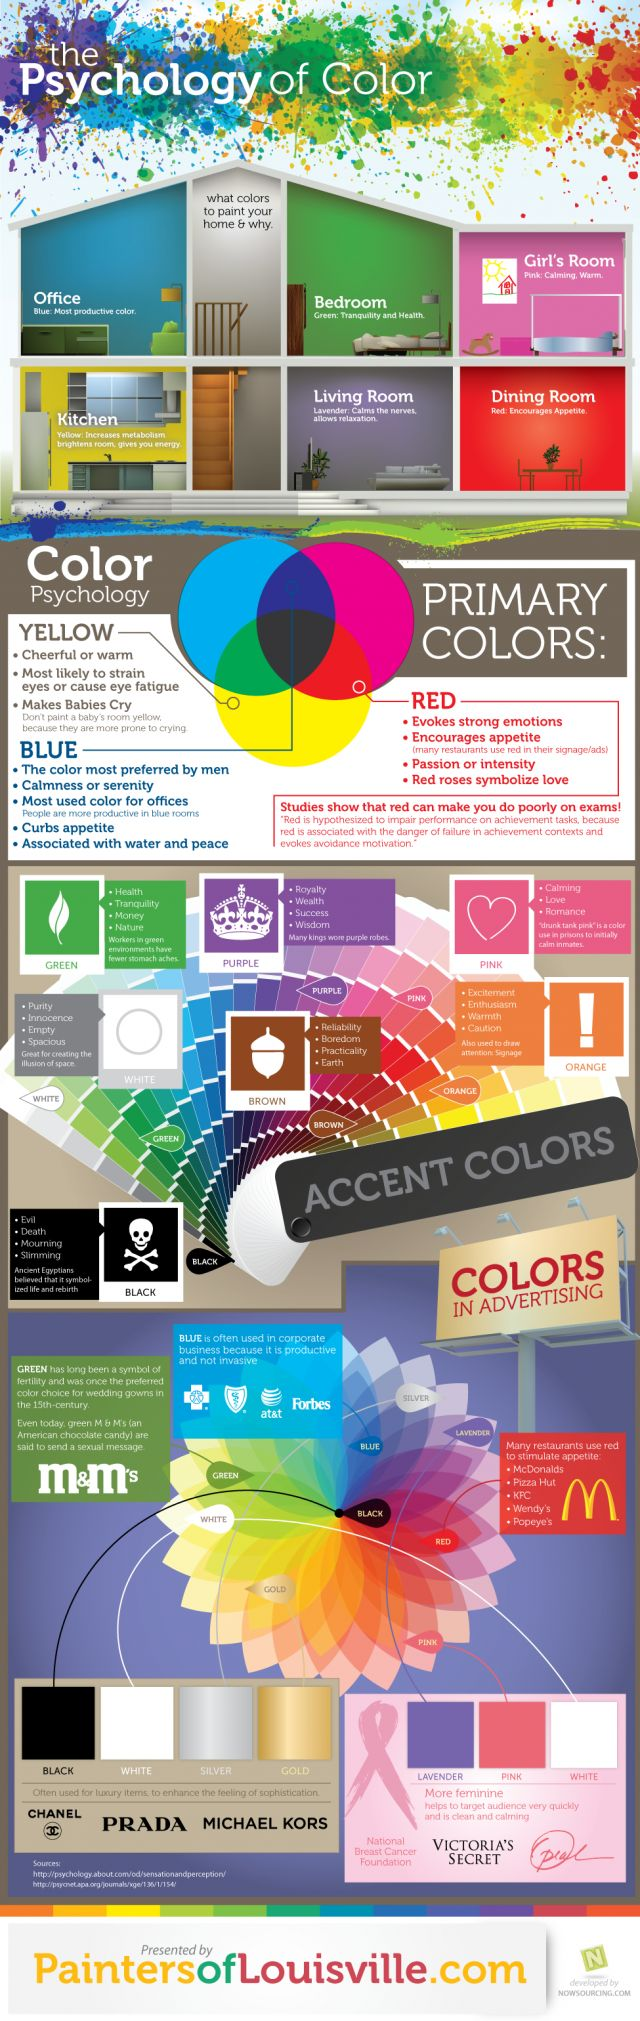 90 best fabric dying color images on pinterest craft dyeing colors in marketing communication 13 nvjuhfo Images